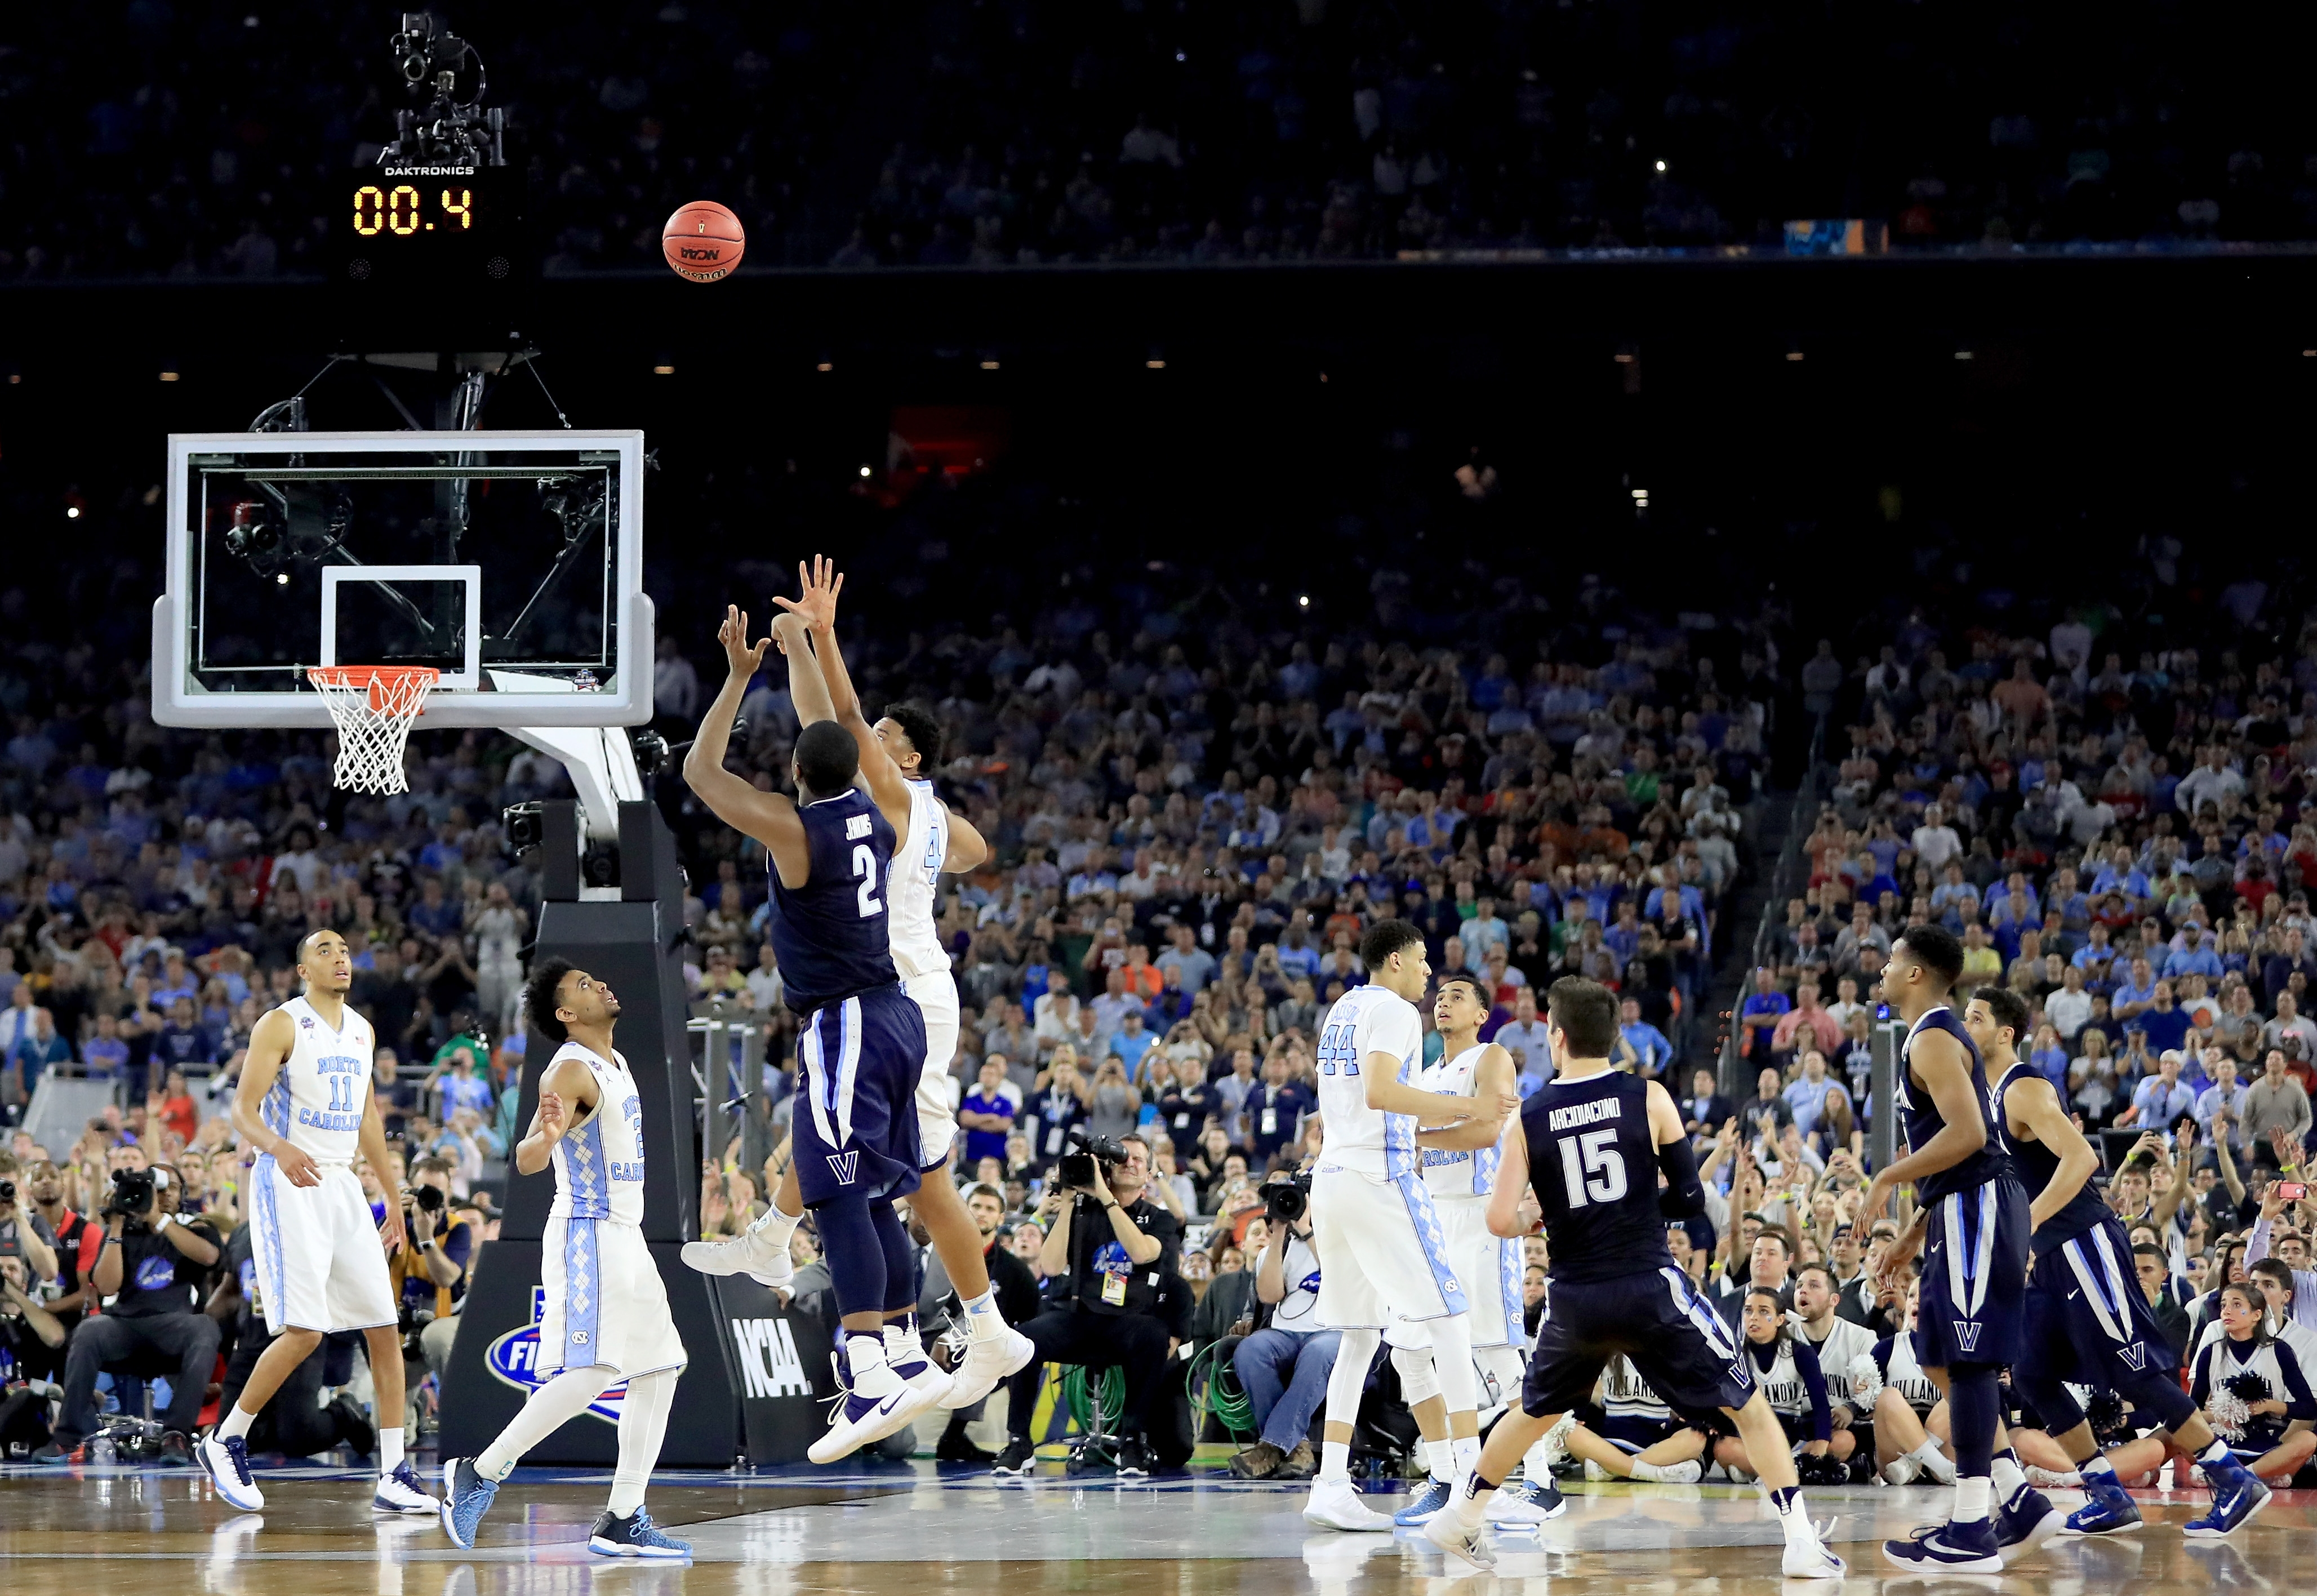 Kris Jenkins' lets fly with the shot that won the national championship for Villanova Monday.